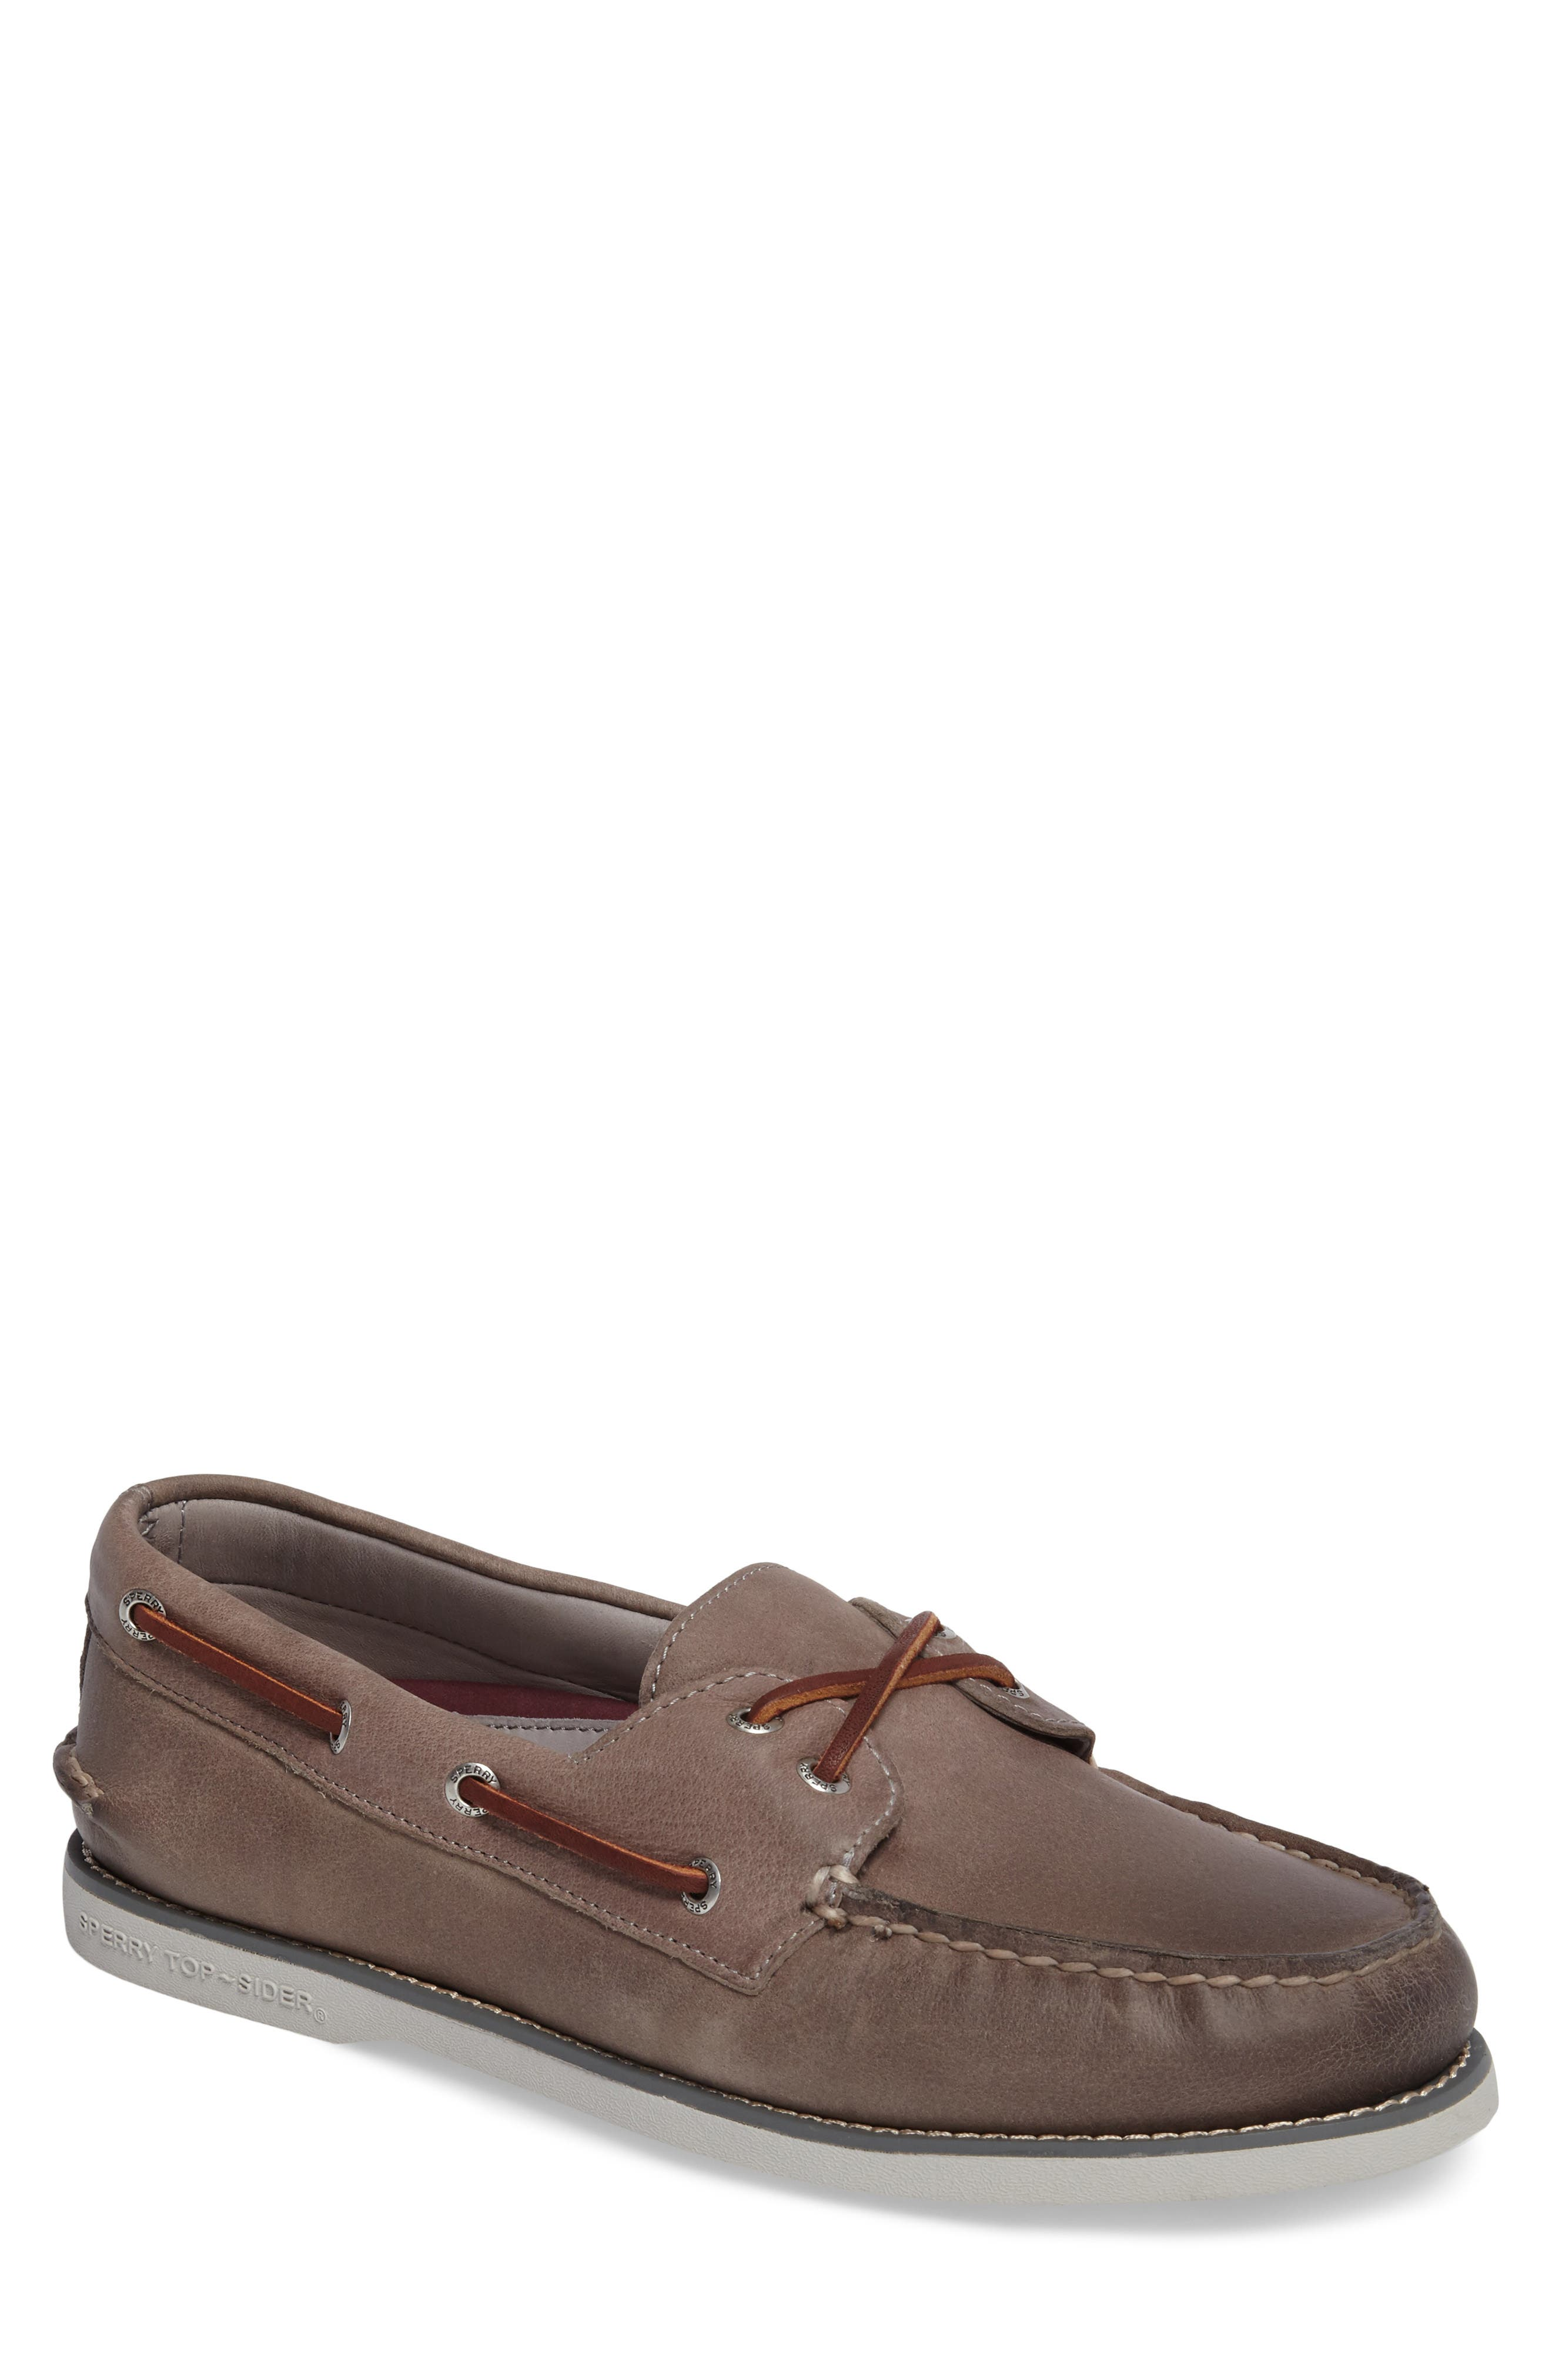 Alternate Image 1 Selected - Sperry 'Gold Cup - Authentic Original' Boat Shoe (Men)